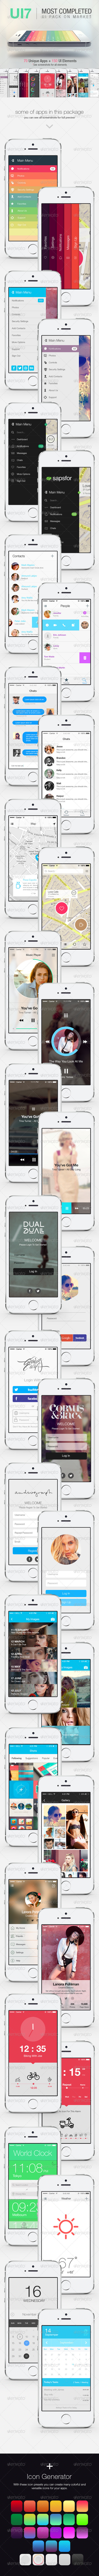 GraphicRiver UI7 Flat Bootstrap Mobile UI Phone App 7812363